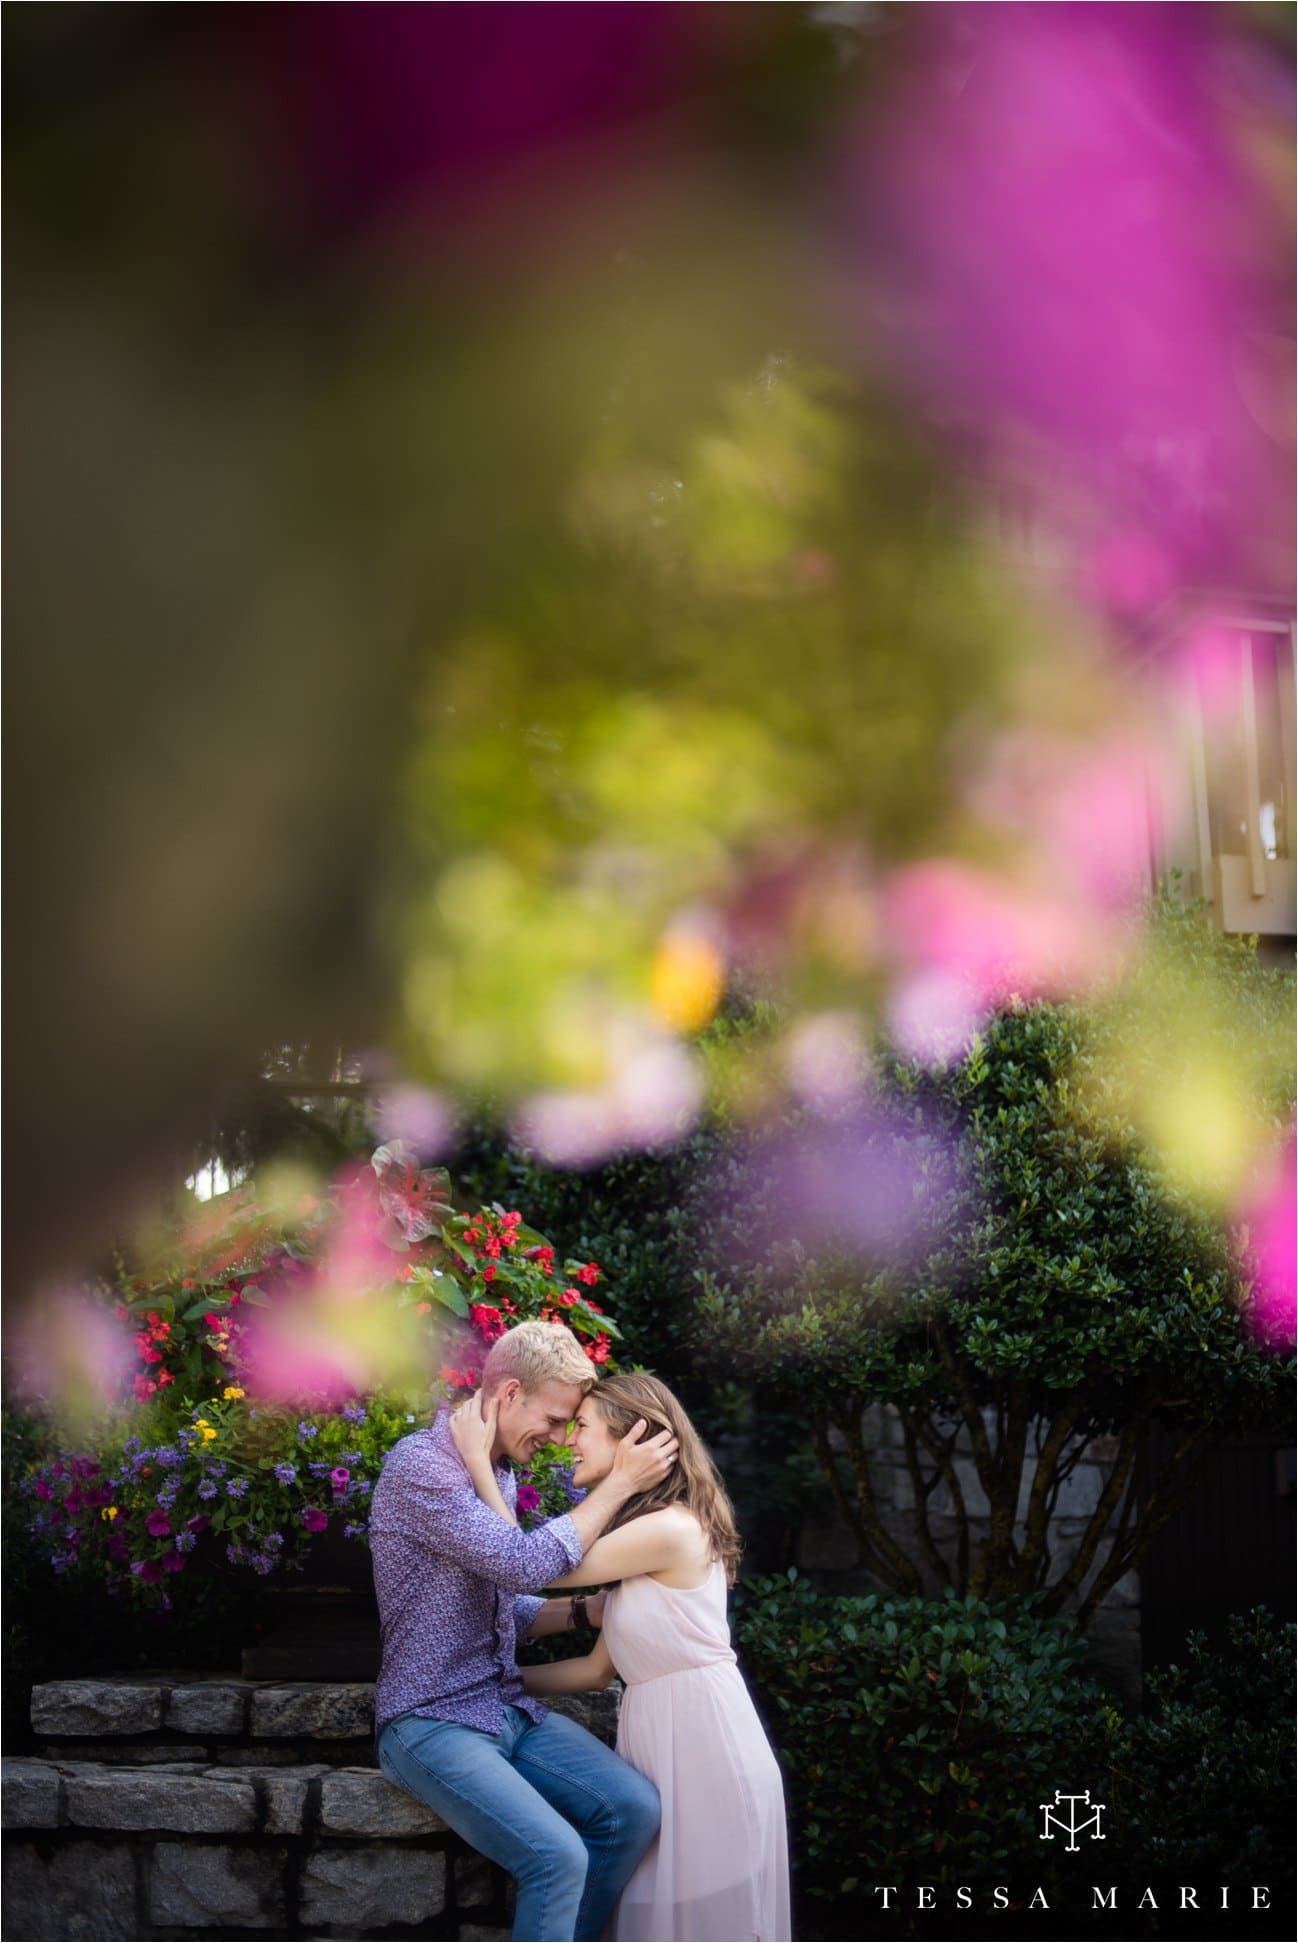 tessa_marie_studios_engagement_pictures_by_the_river_tessa_marie_weddings_0020